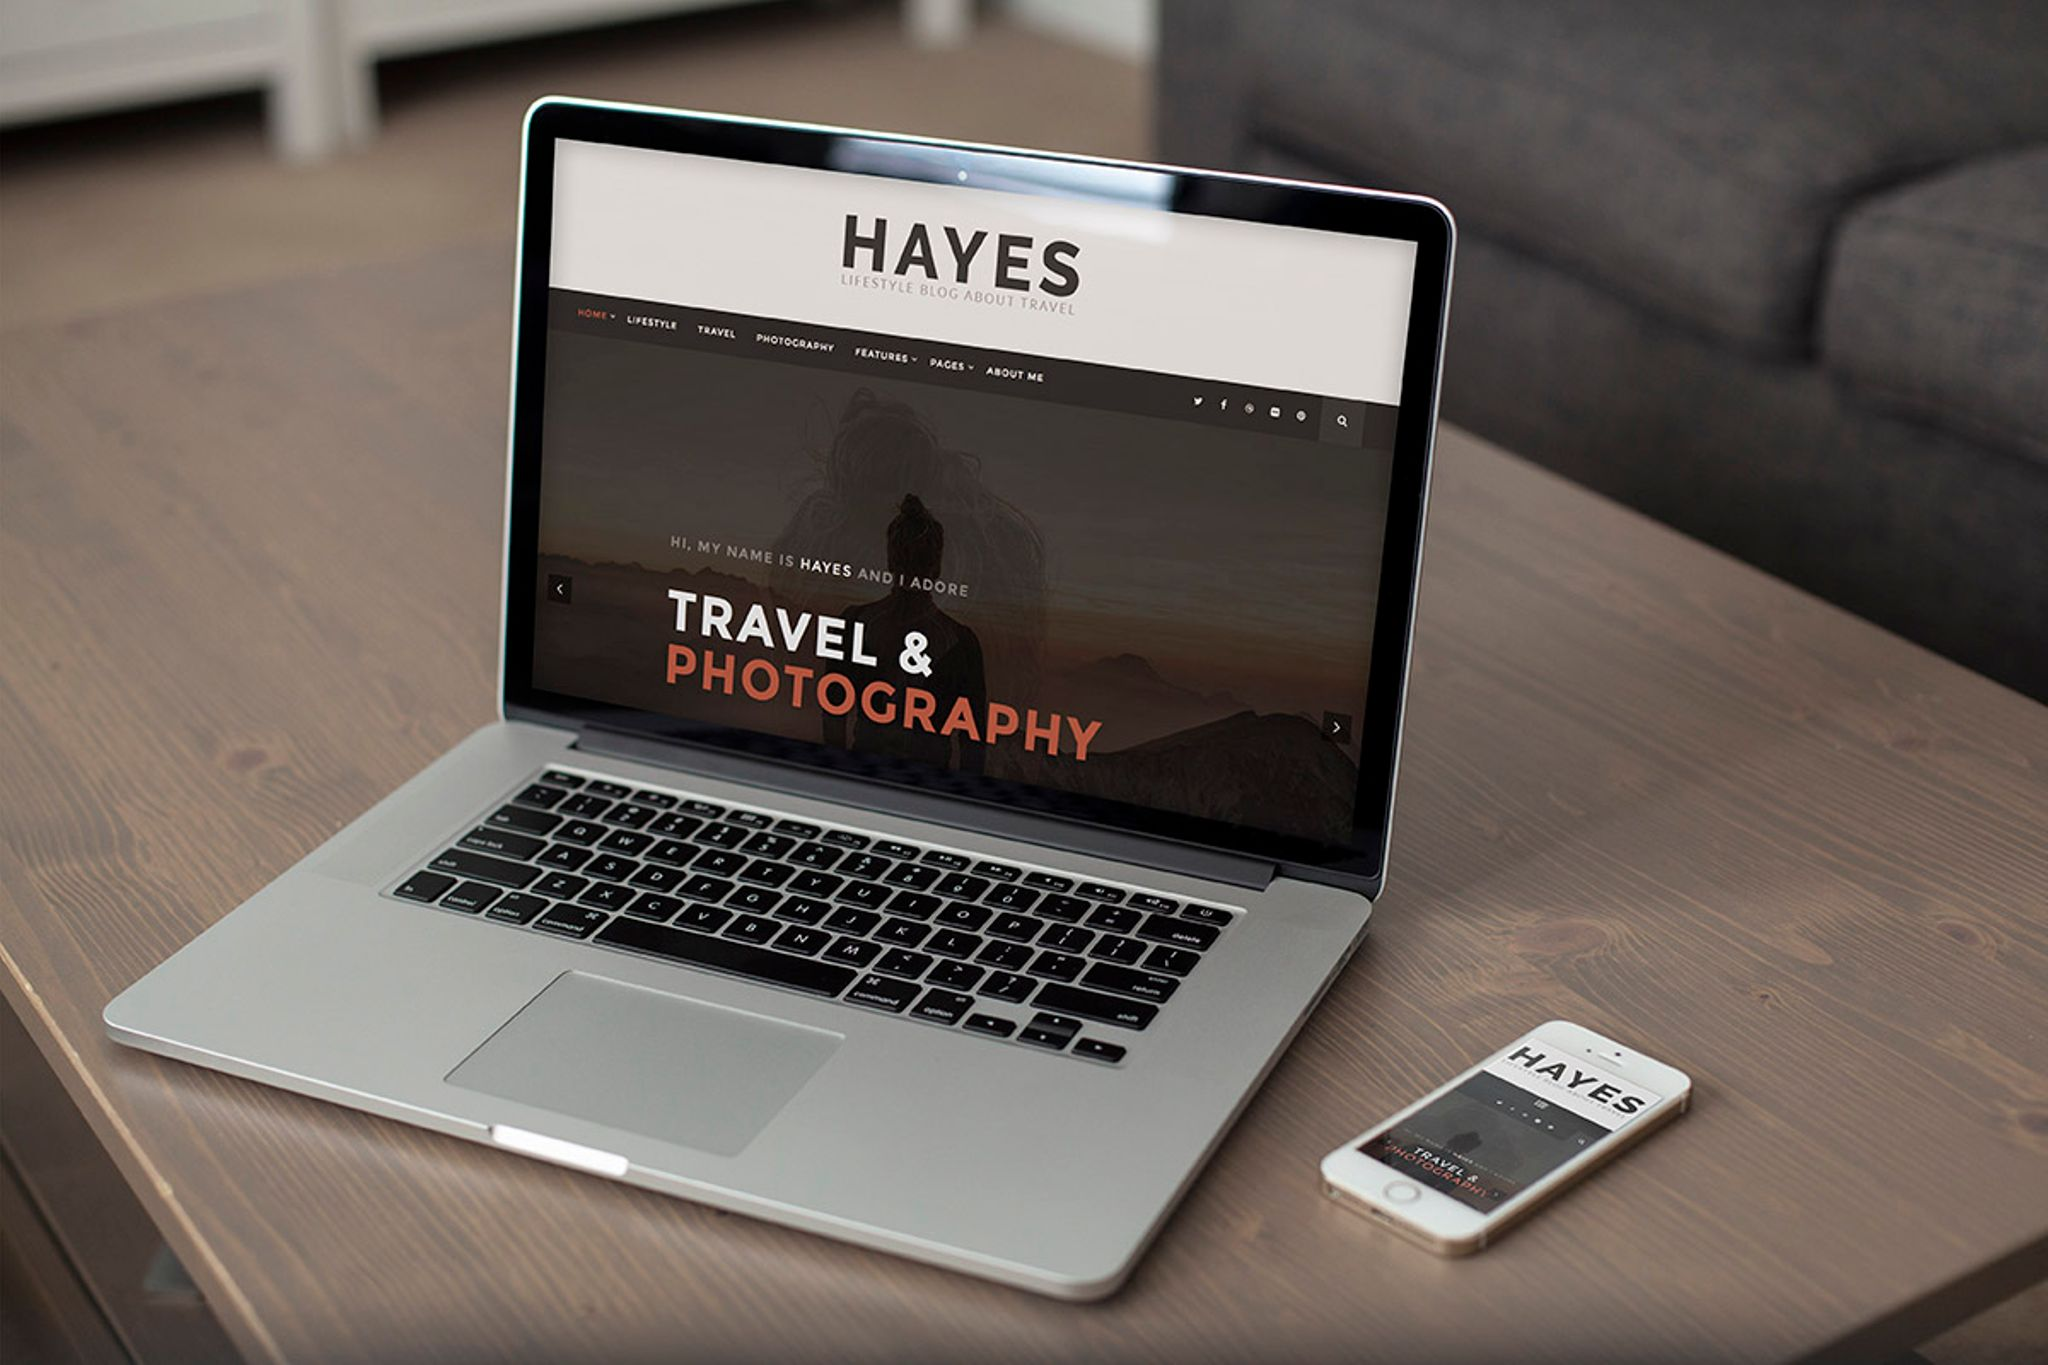 https://s3.tmimgcdn.com/templates/1759/scr/hayes-wordpress-theme-blog-2.jpg